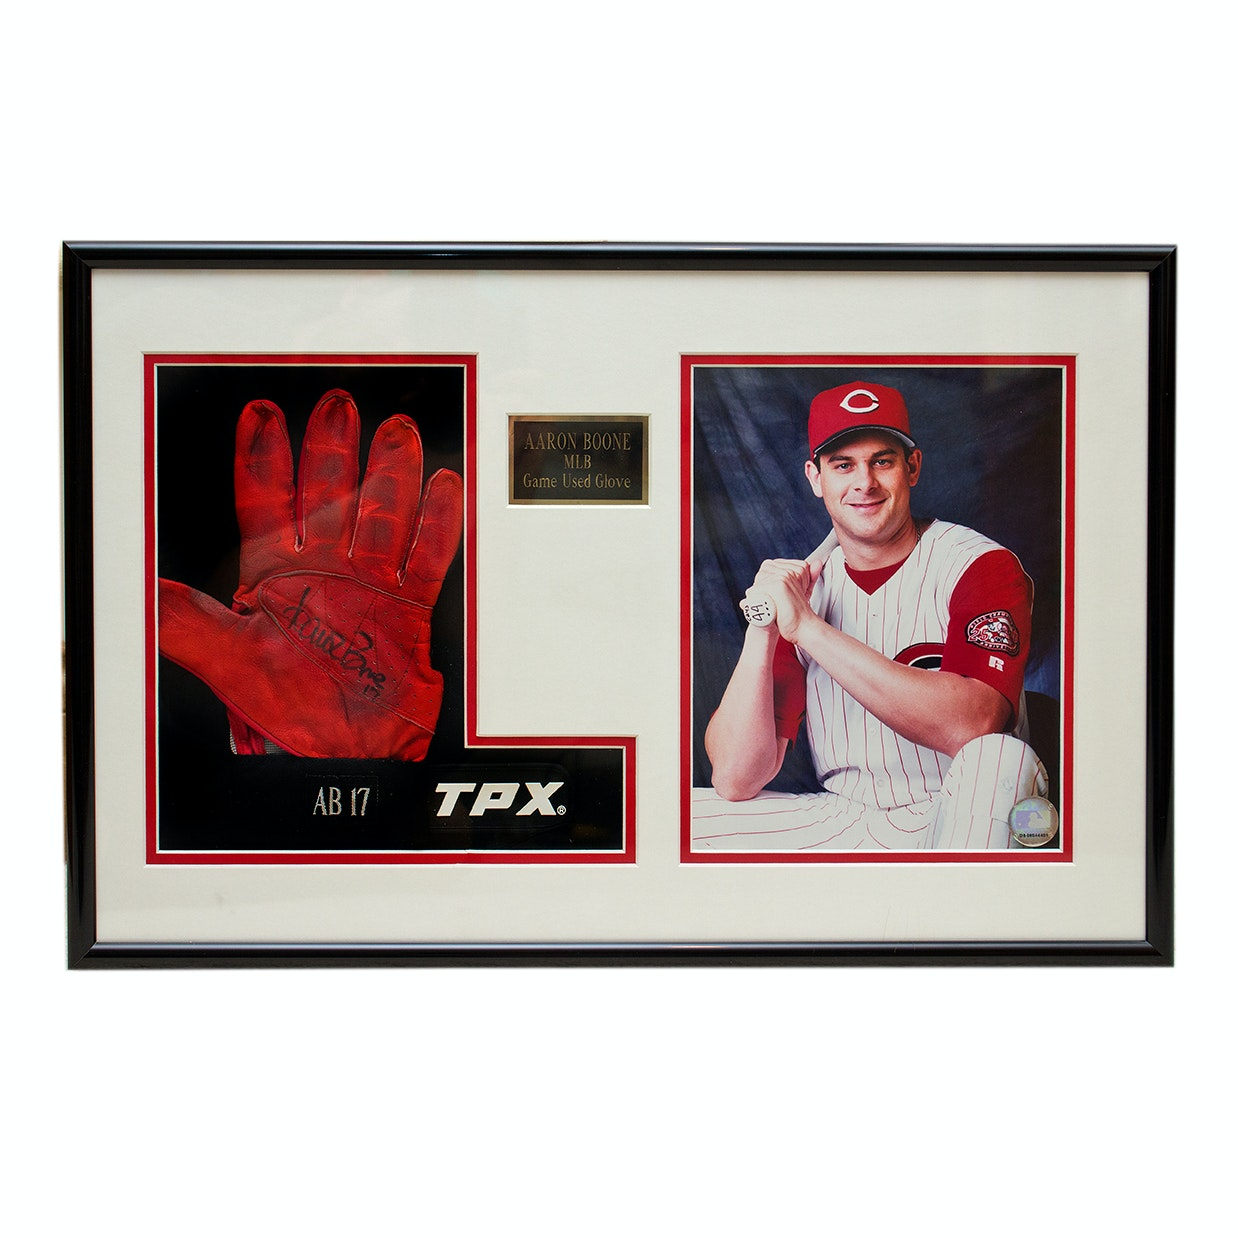 Aaron Boone Framed Autographed Batting Glove